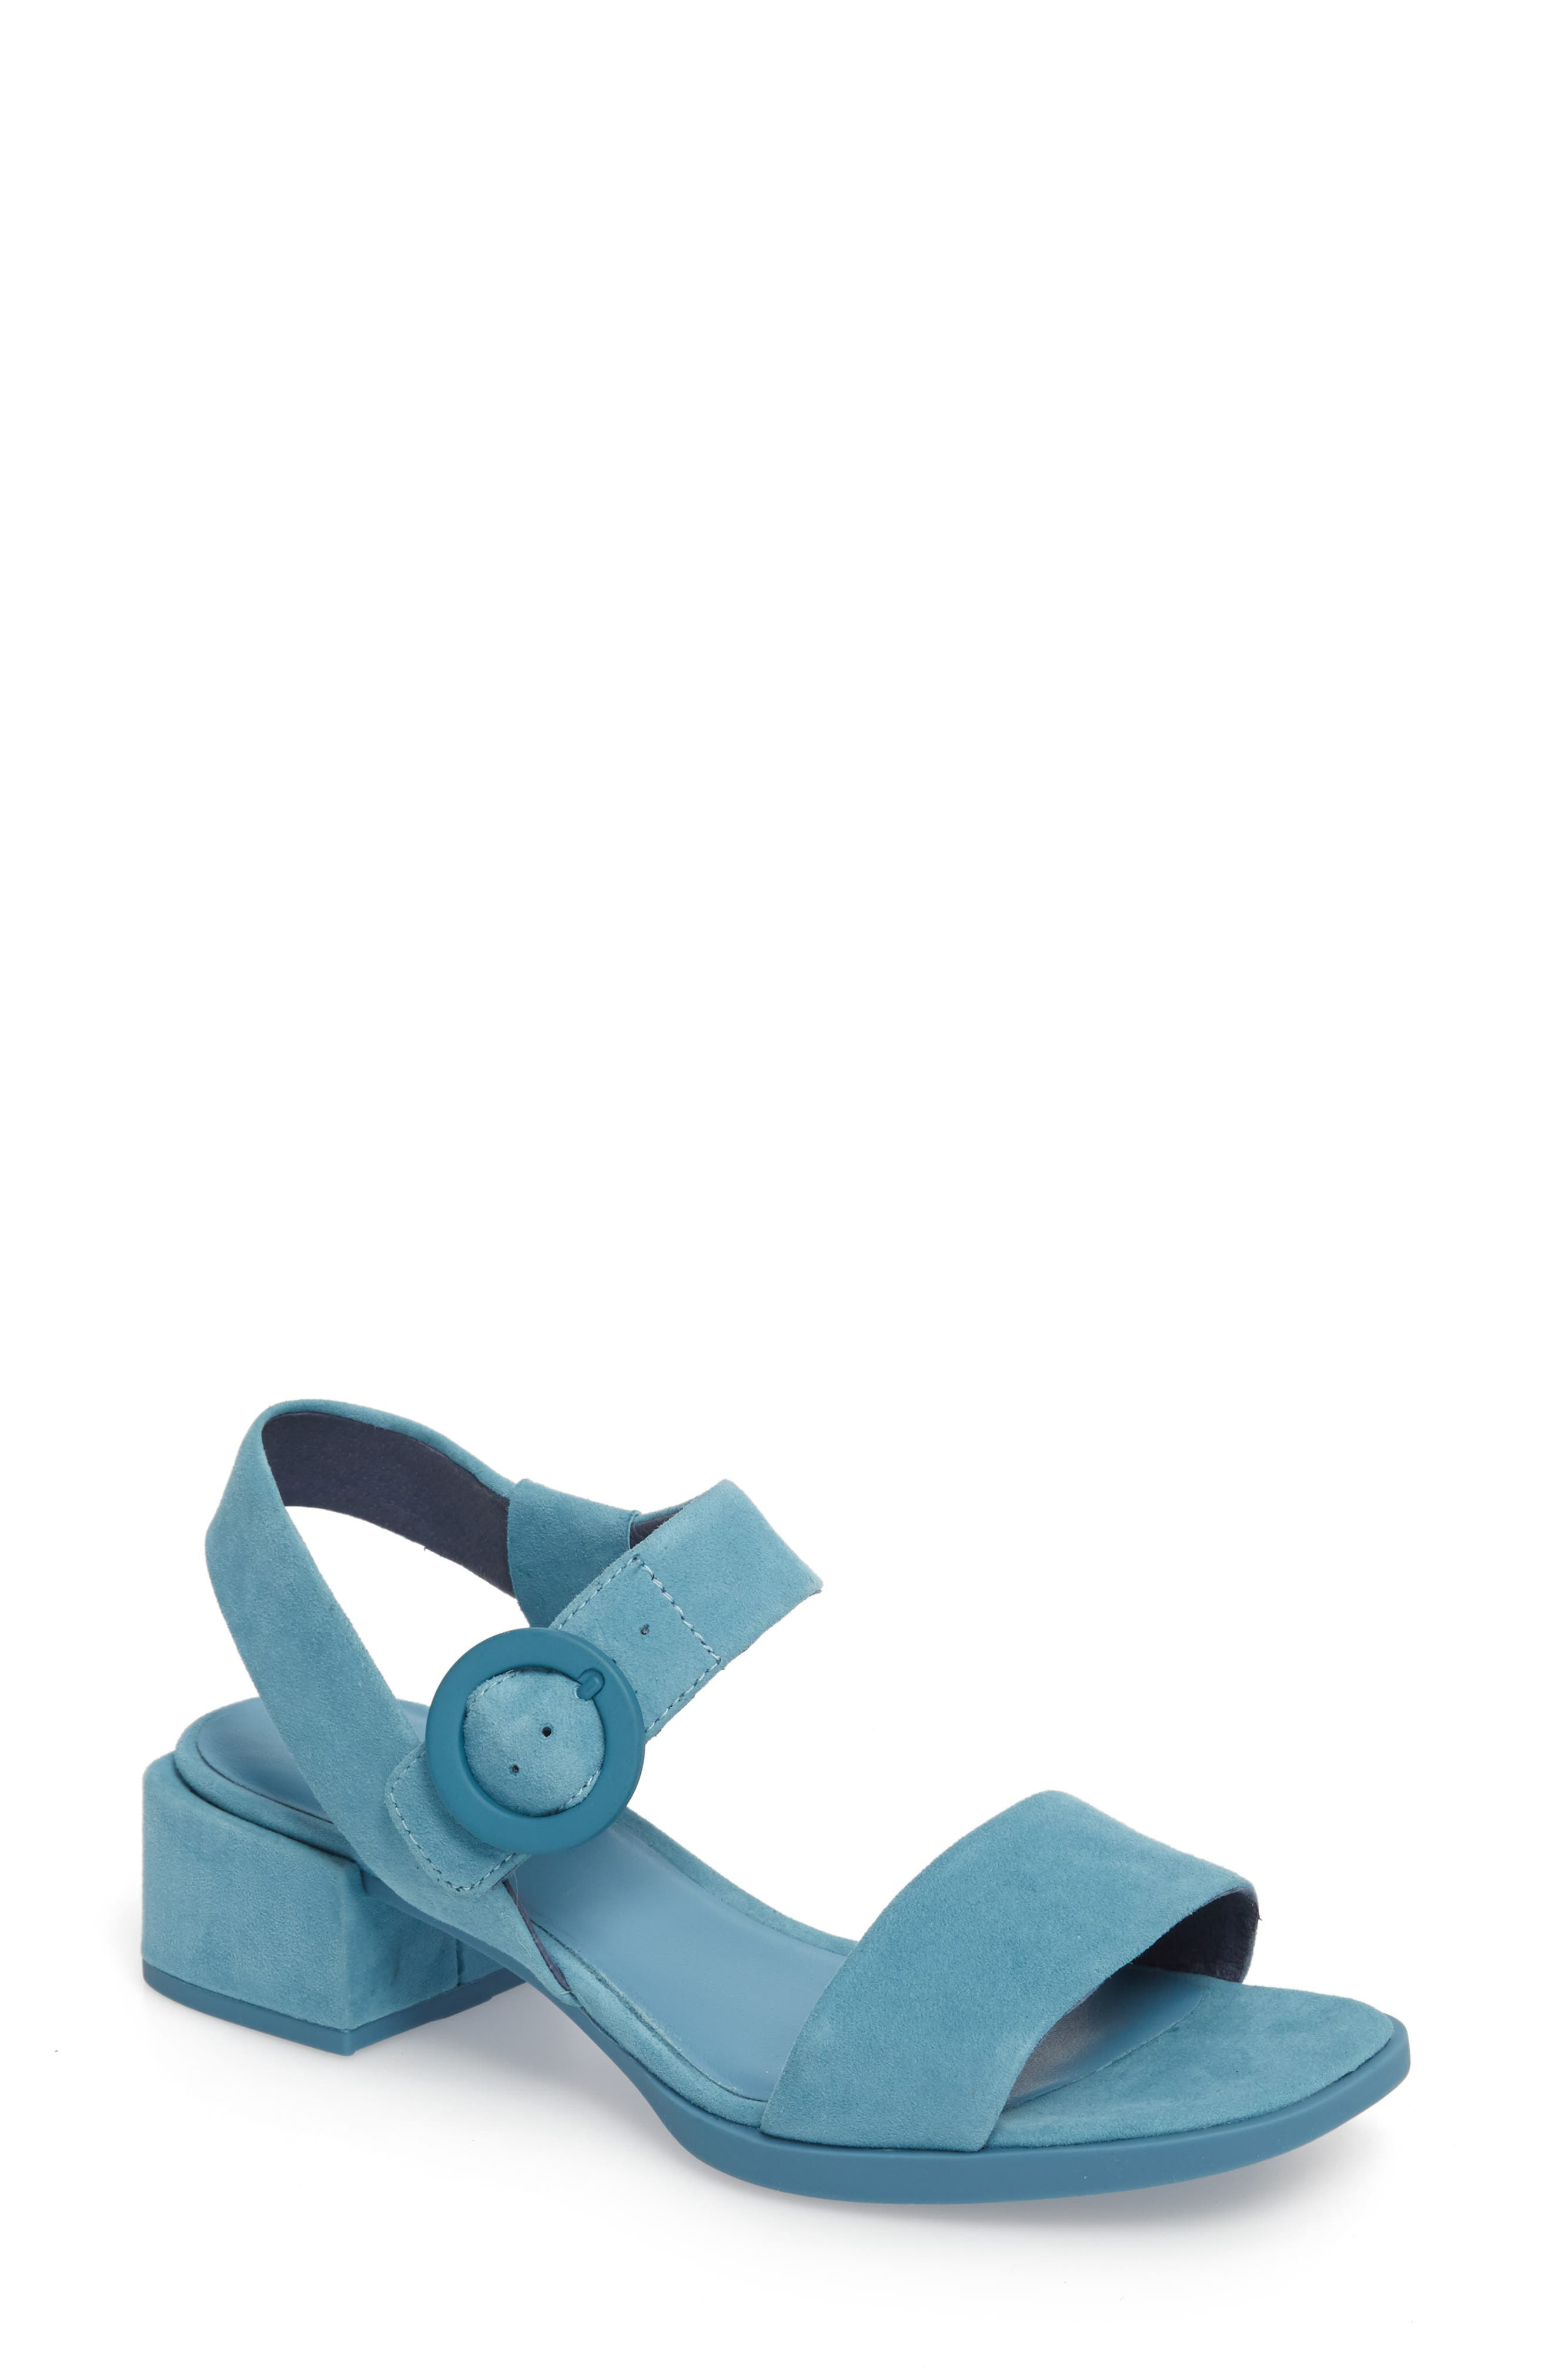 Kobo Sandal,                         Main,                         color, Medium Blue Suede